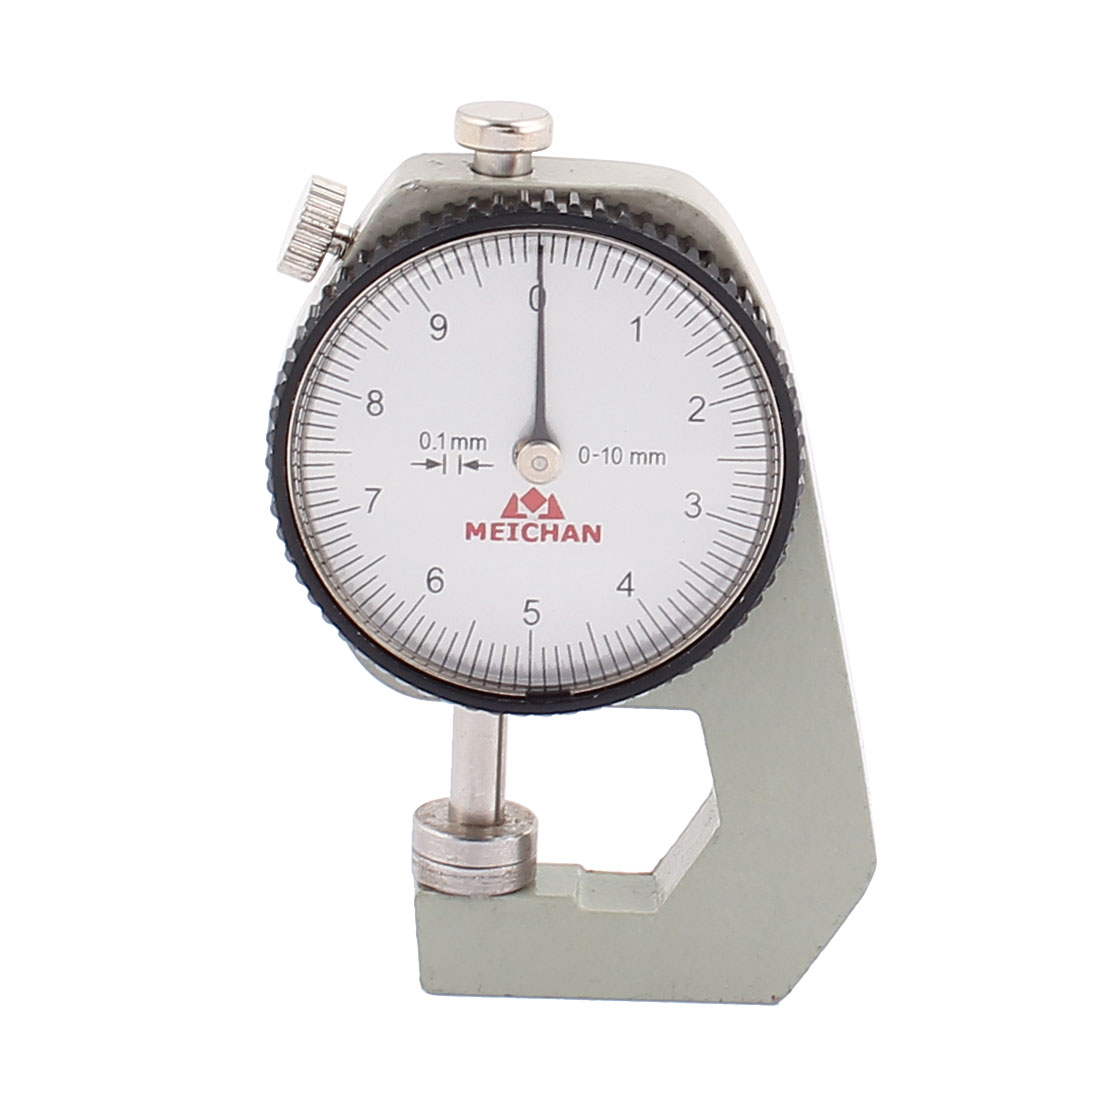 0 to 20mm Measuring Range 0.1mm Grad Round Dial Thickness Gauge C-05